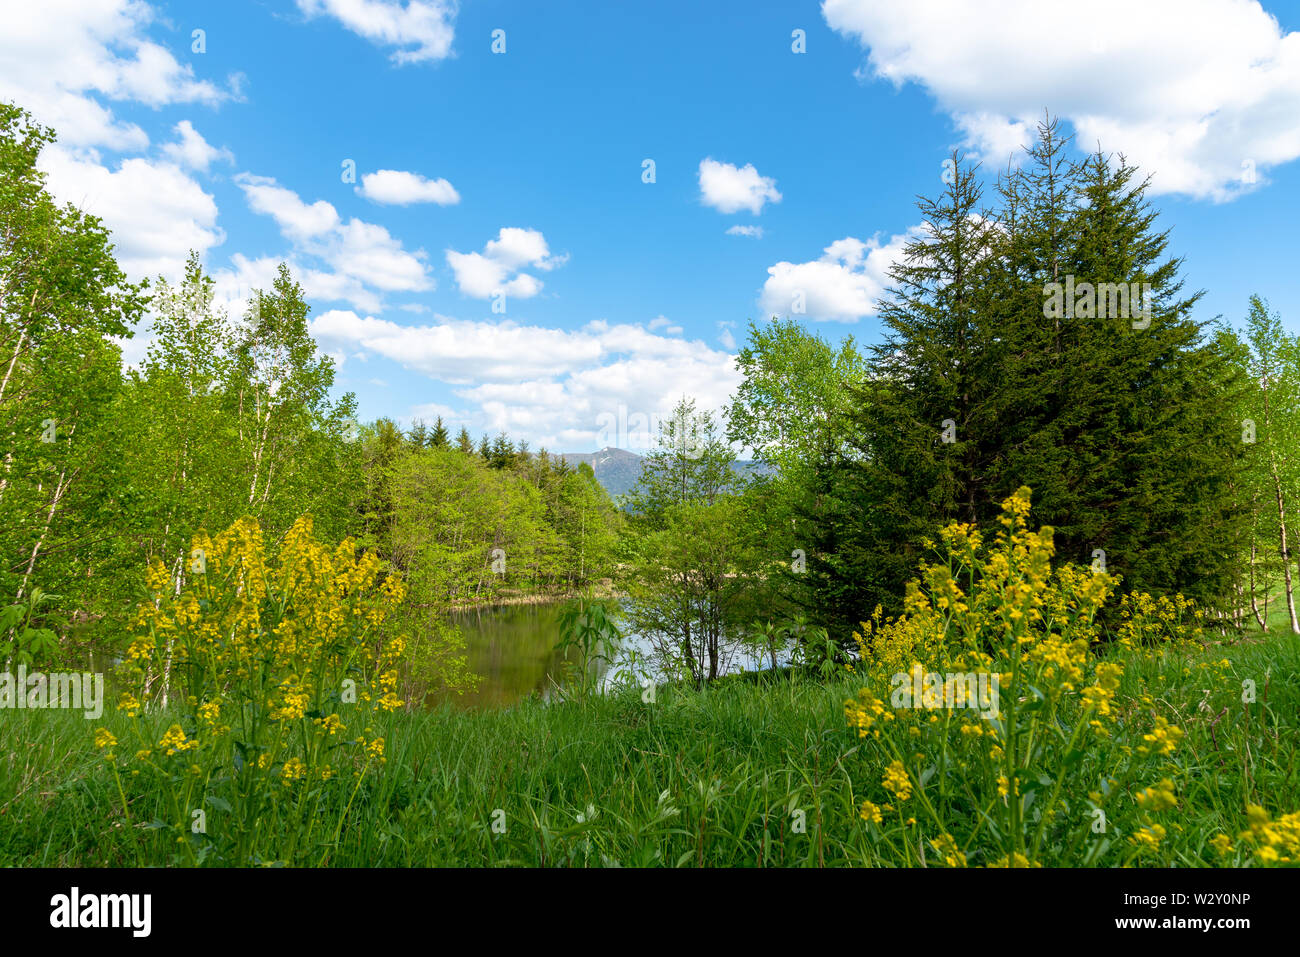 Beautiful forest mountain scenery at lakeside, nature landscape. Trees on foreground with mountains and blue sky on background in sunny day summer tim - Stock Image